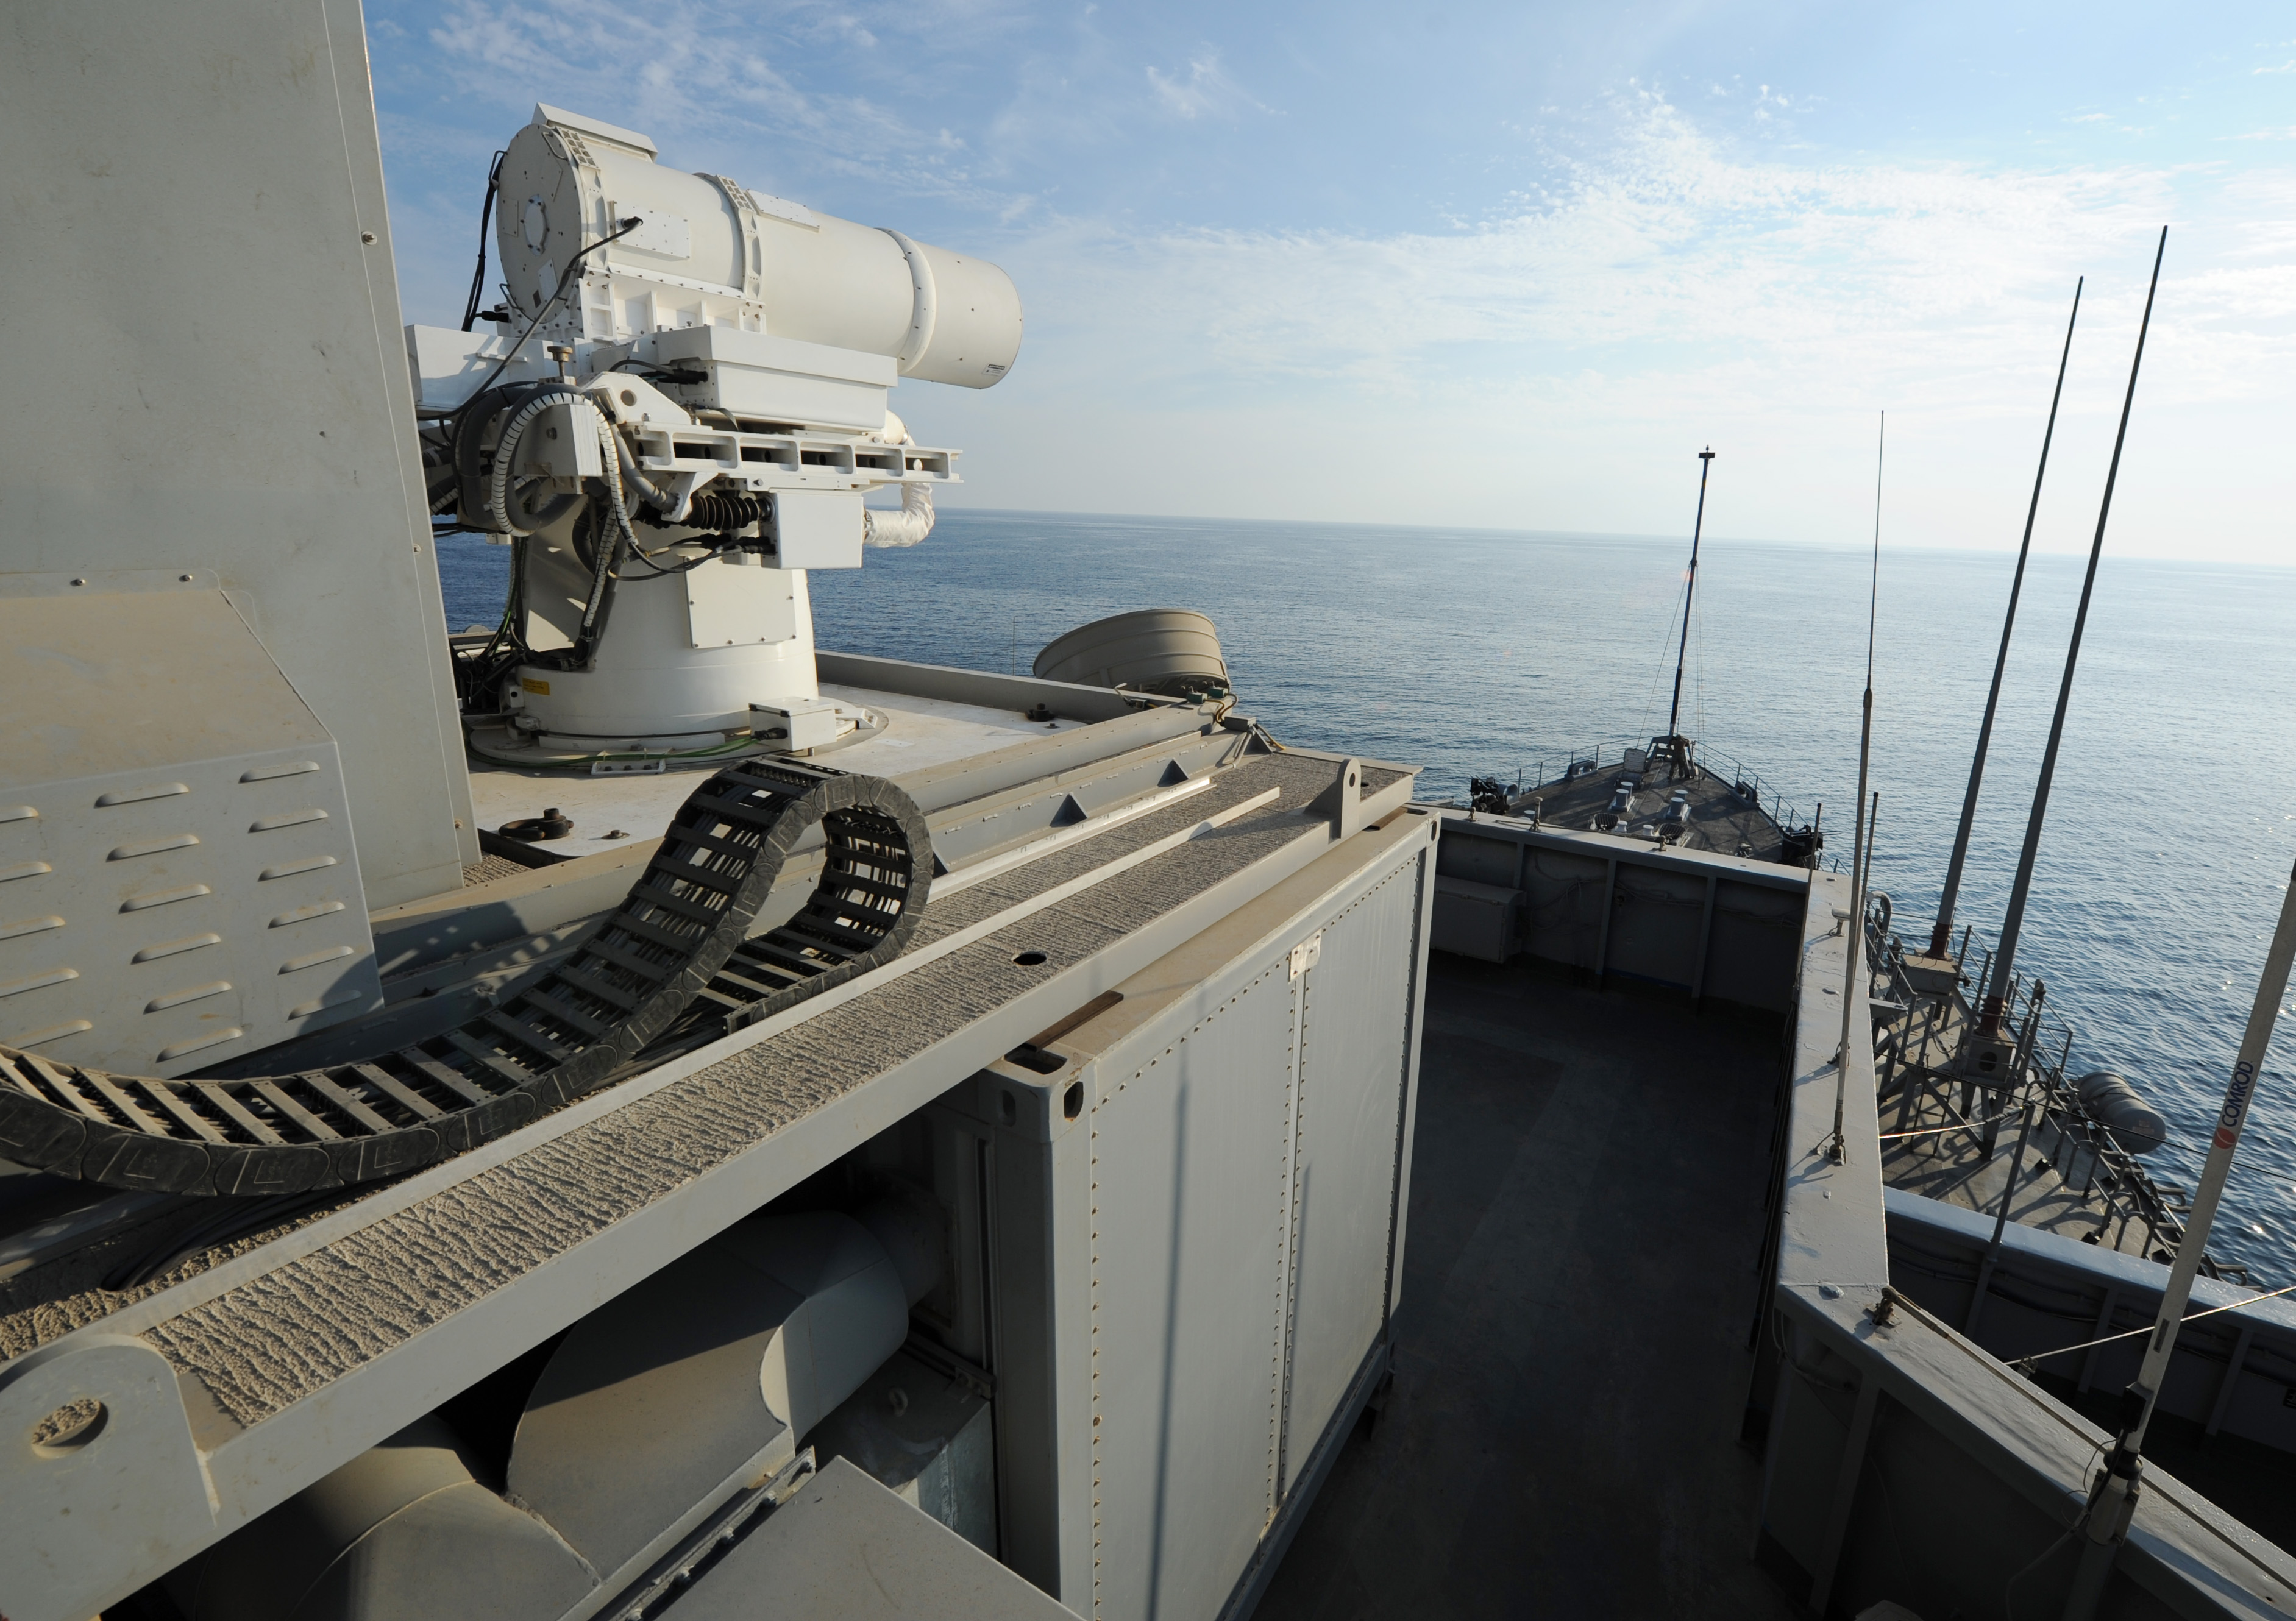 SUCCESS: Navy Tests Laser Weapon System (LaWS)